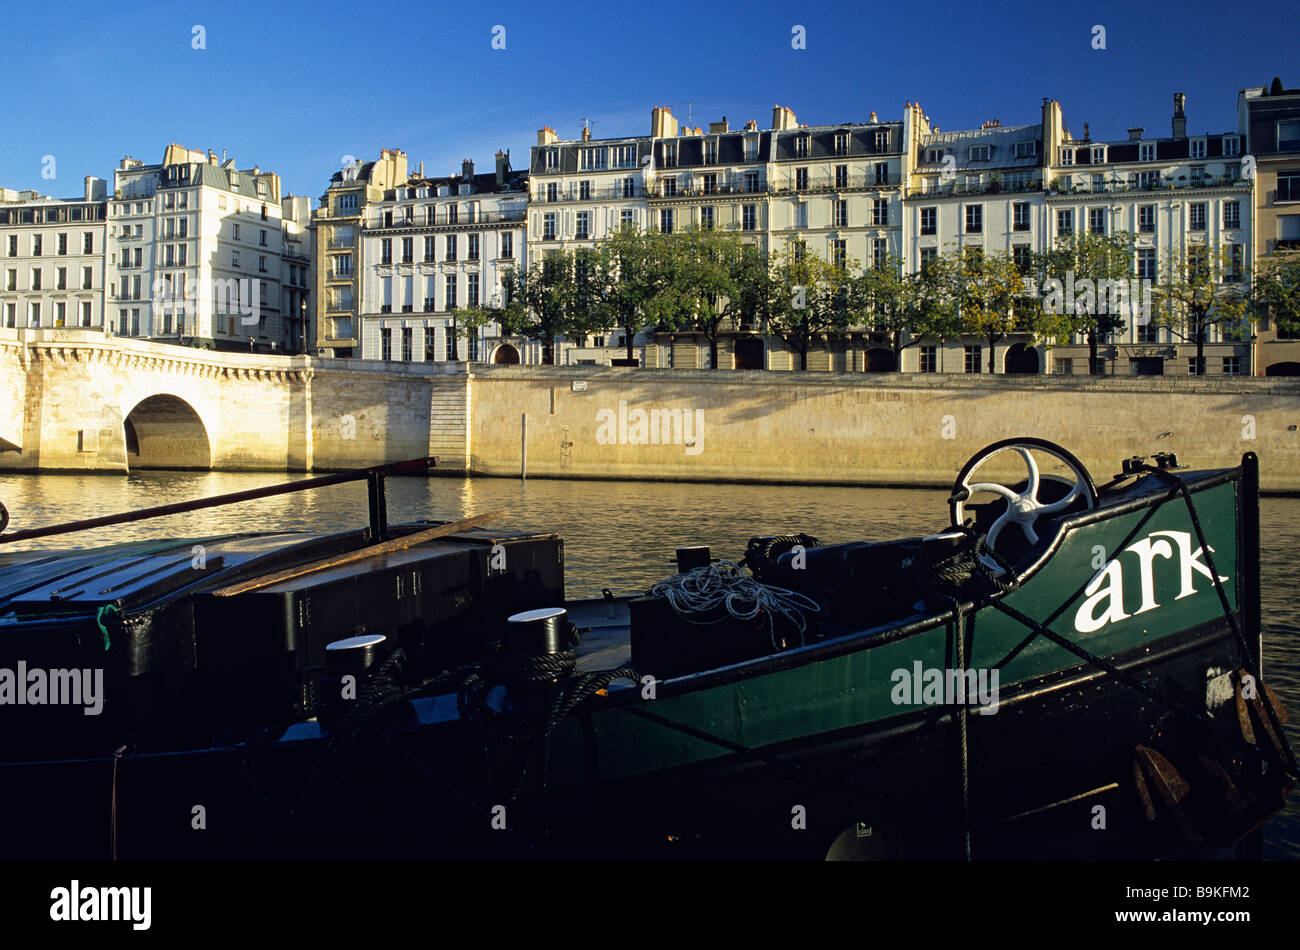 France, Paris, banks of the Seine river classified as World Heritage by UNESCO, buildings of the quai d' Anjou - Stock Image